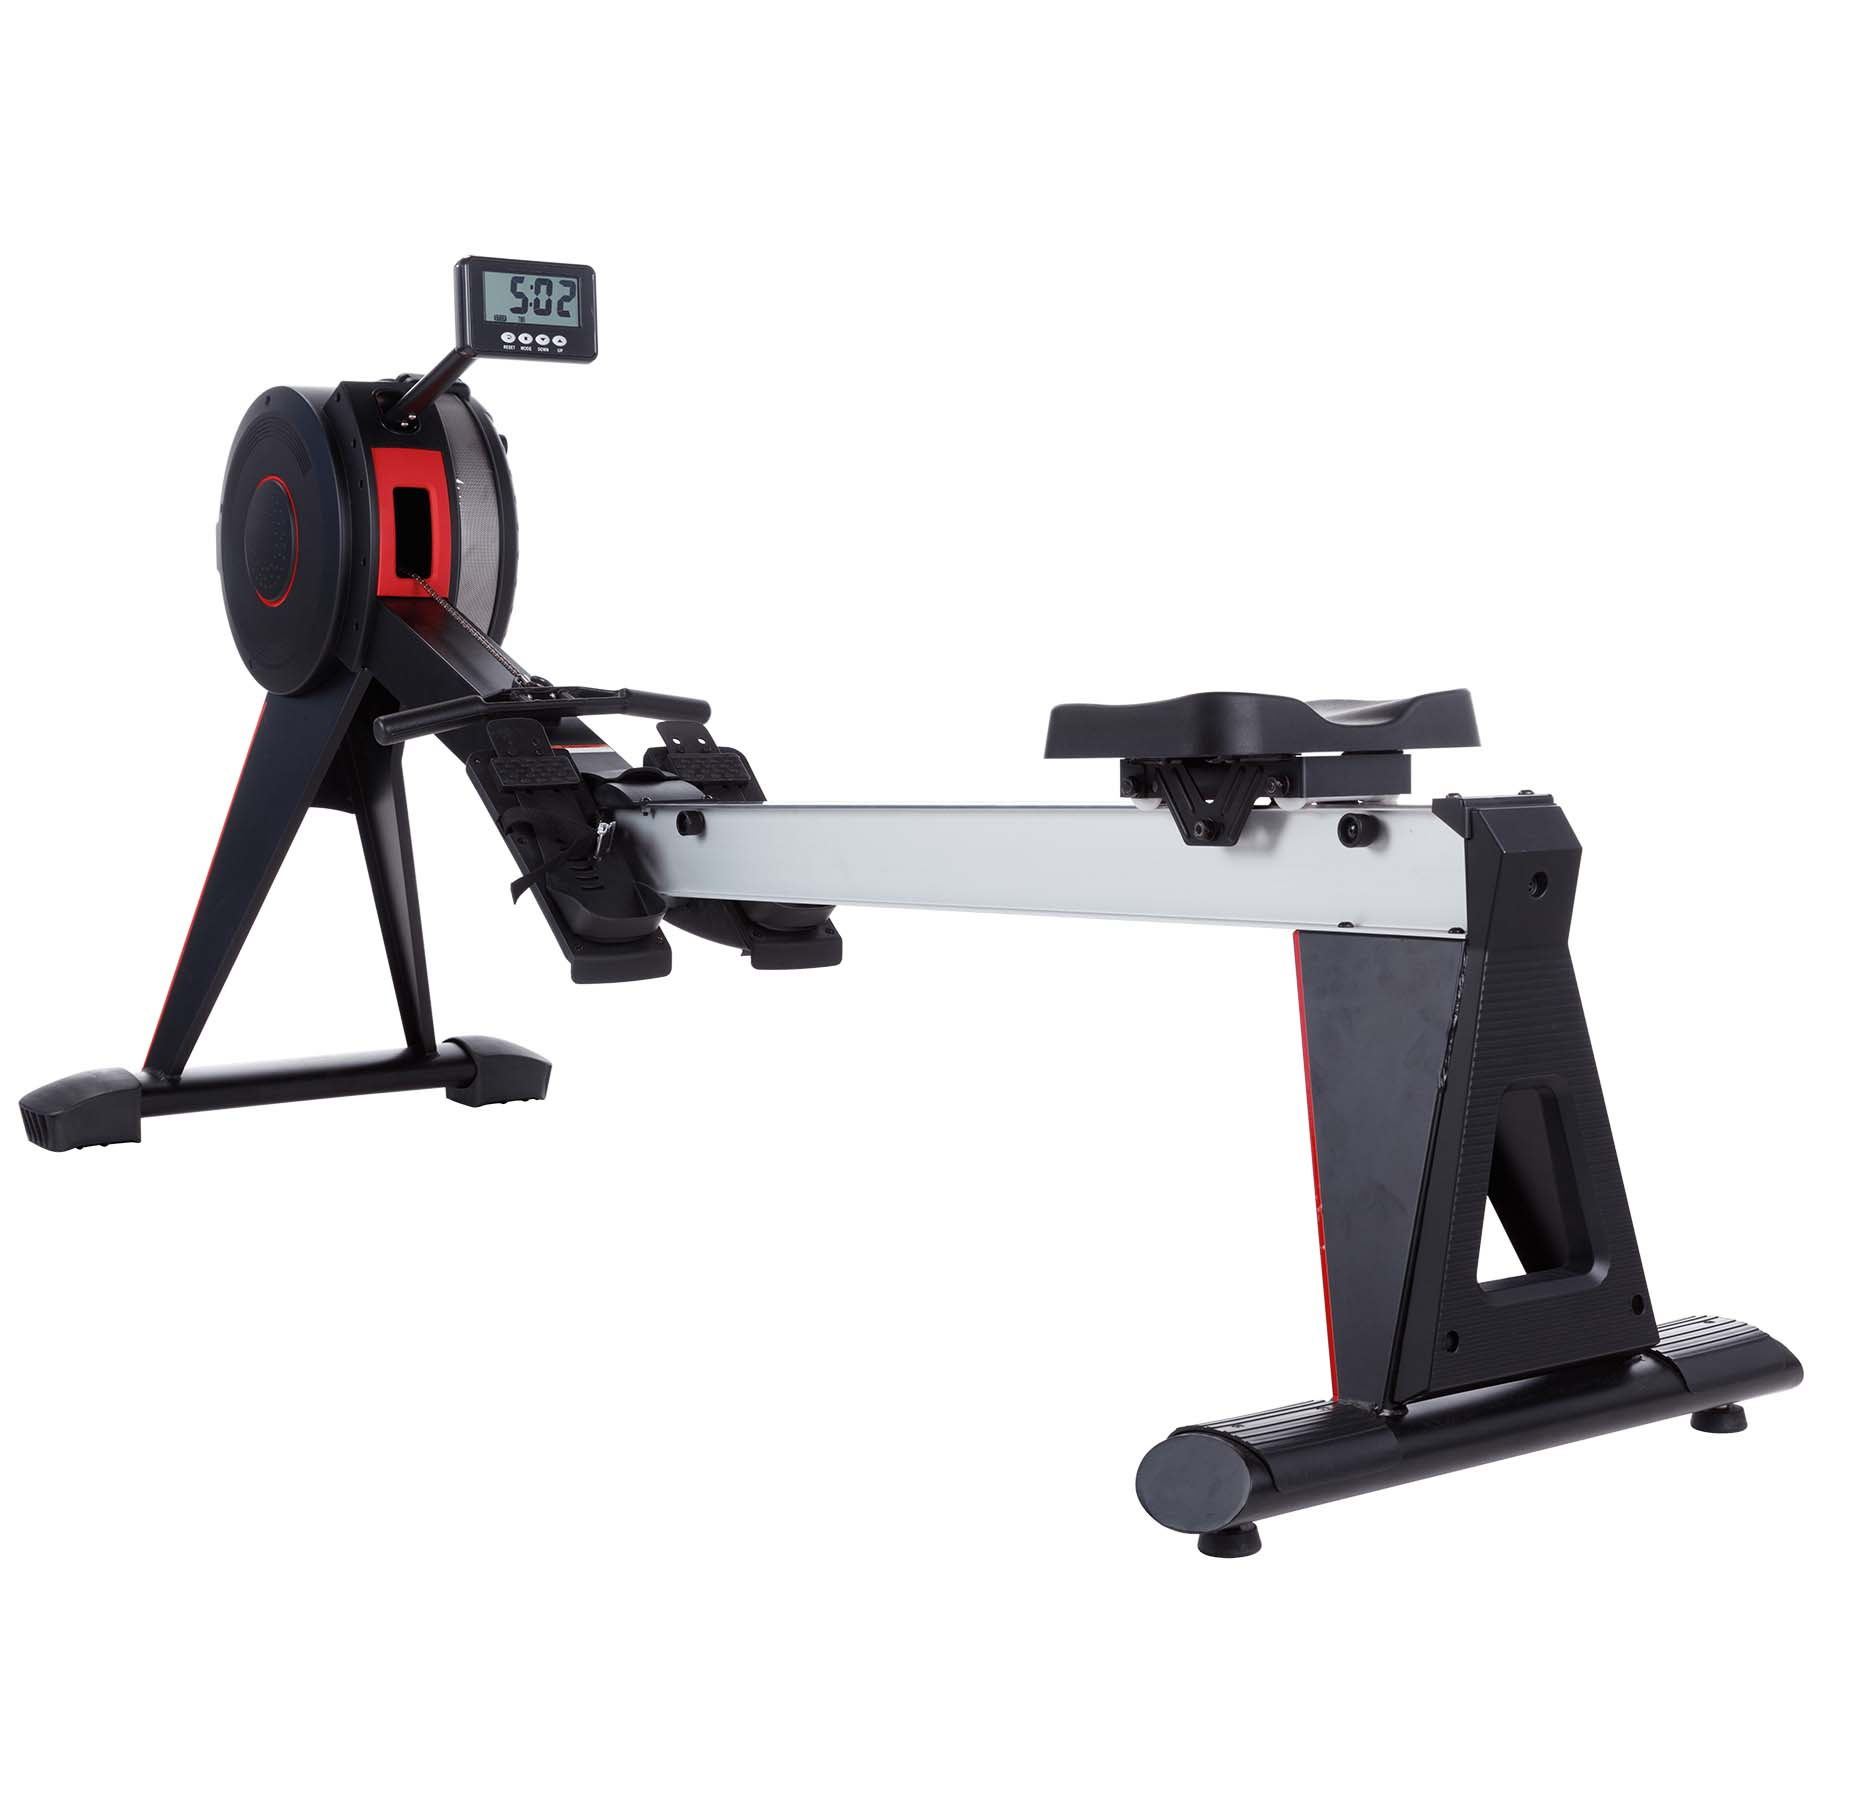 Rowers fitness equipment hire and buy